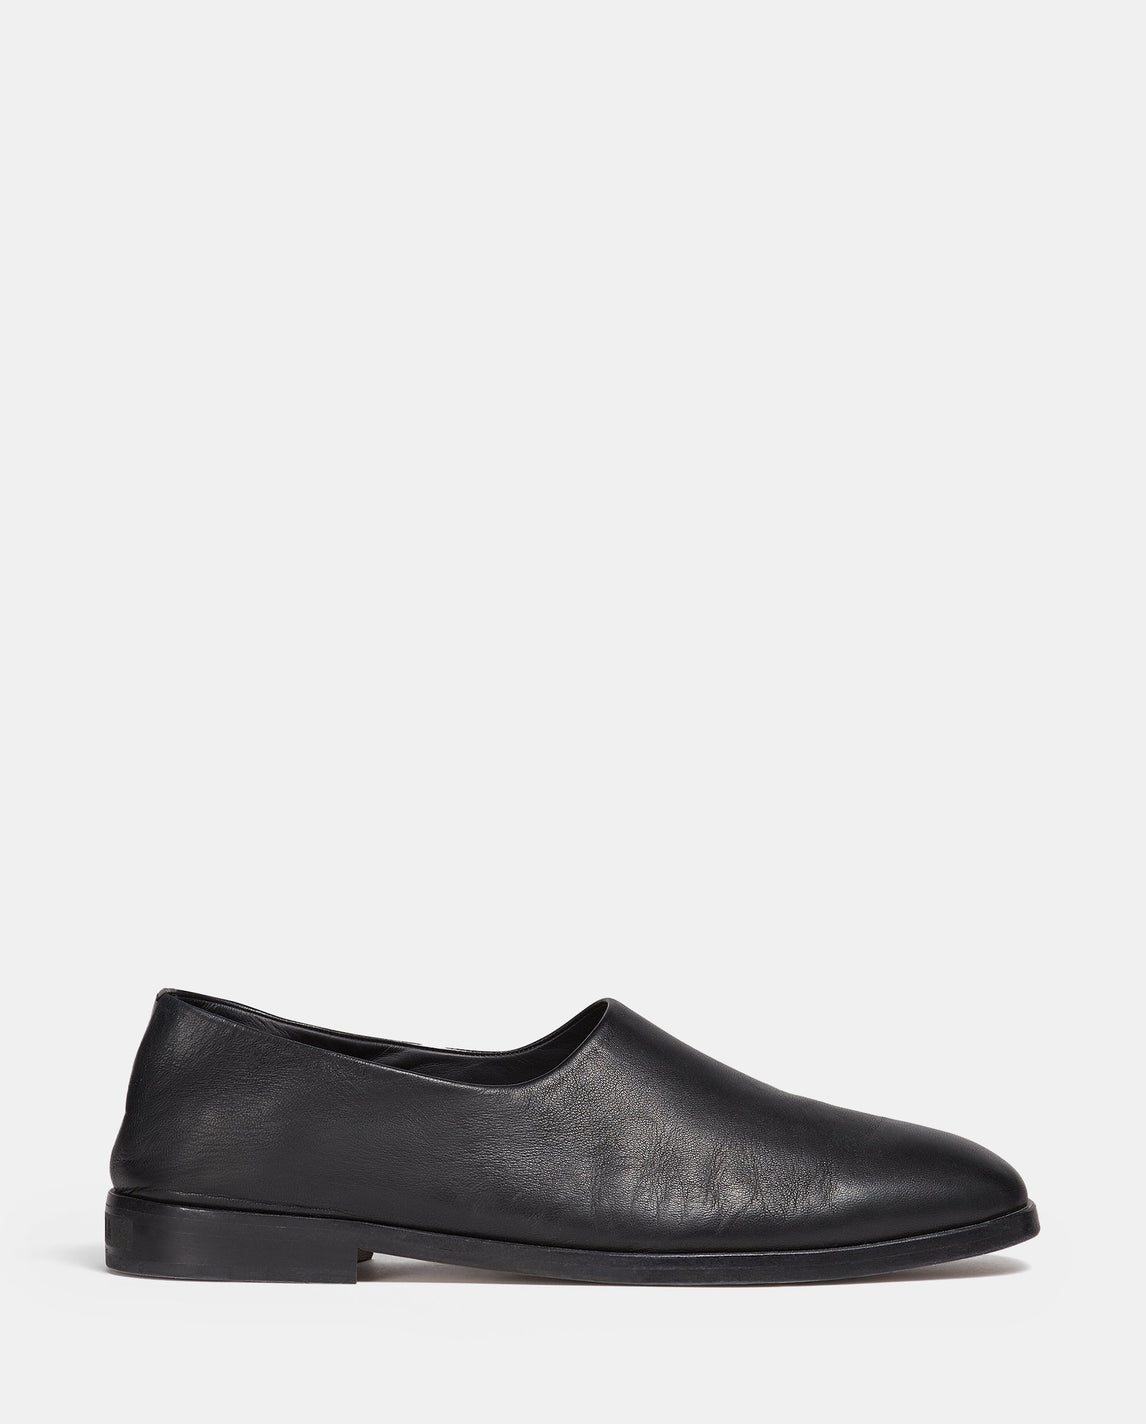 Leather Slip On - Black MENS FEAR OF GOD X ZEGNA